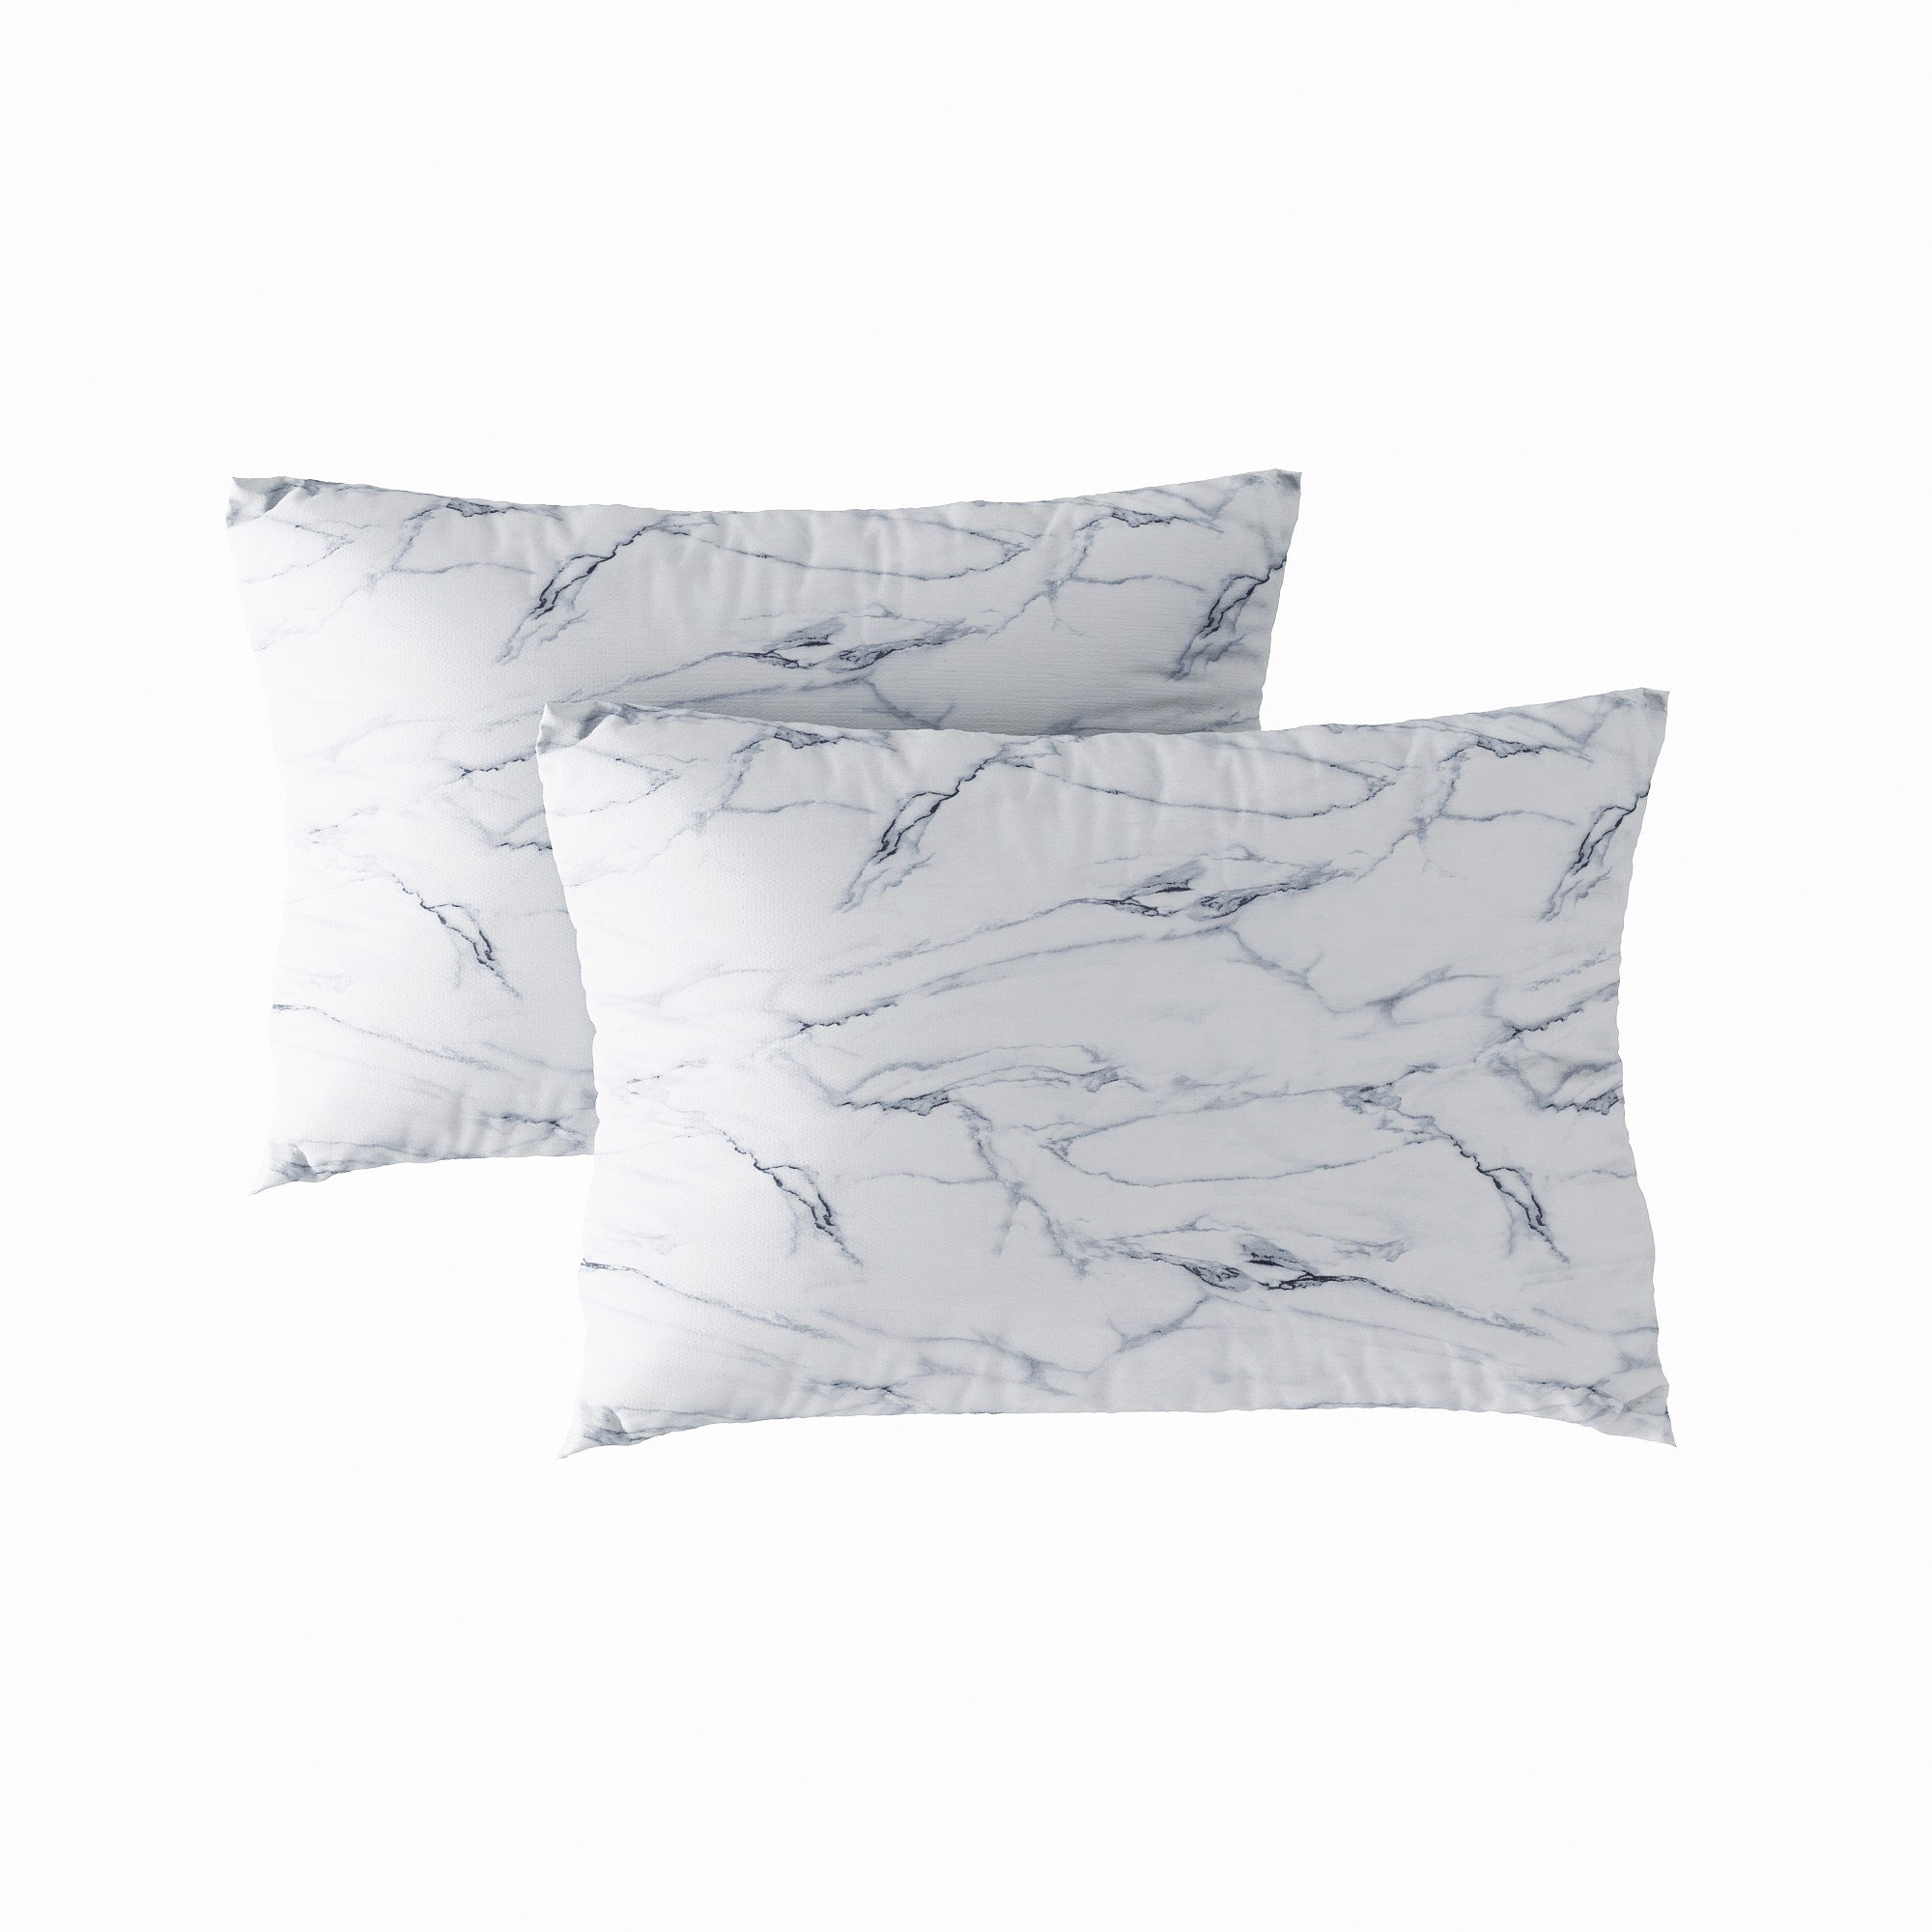 Pillow case 131 Marble